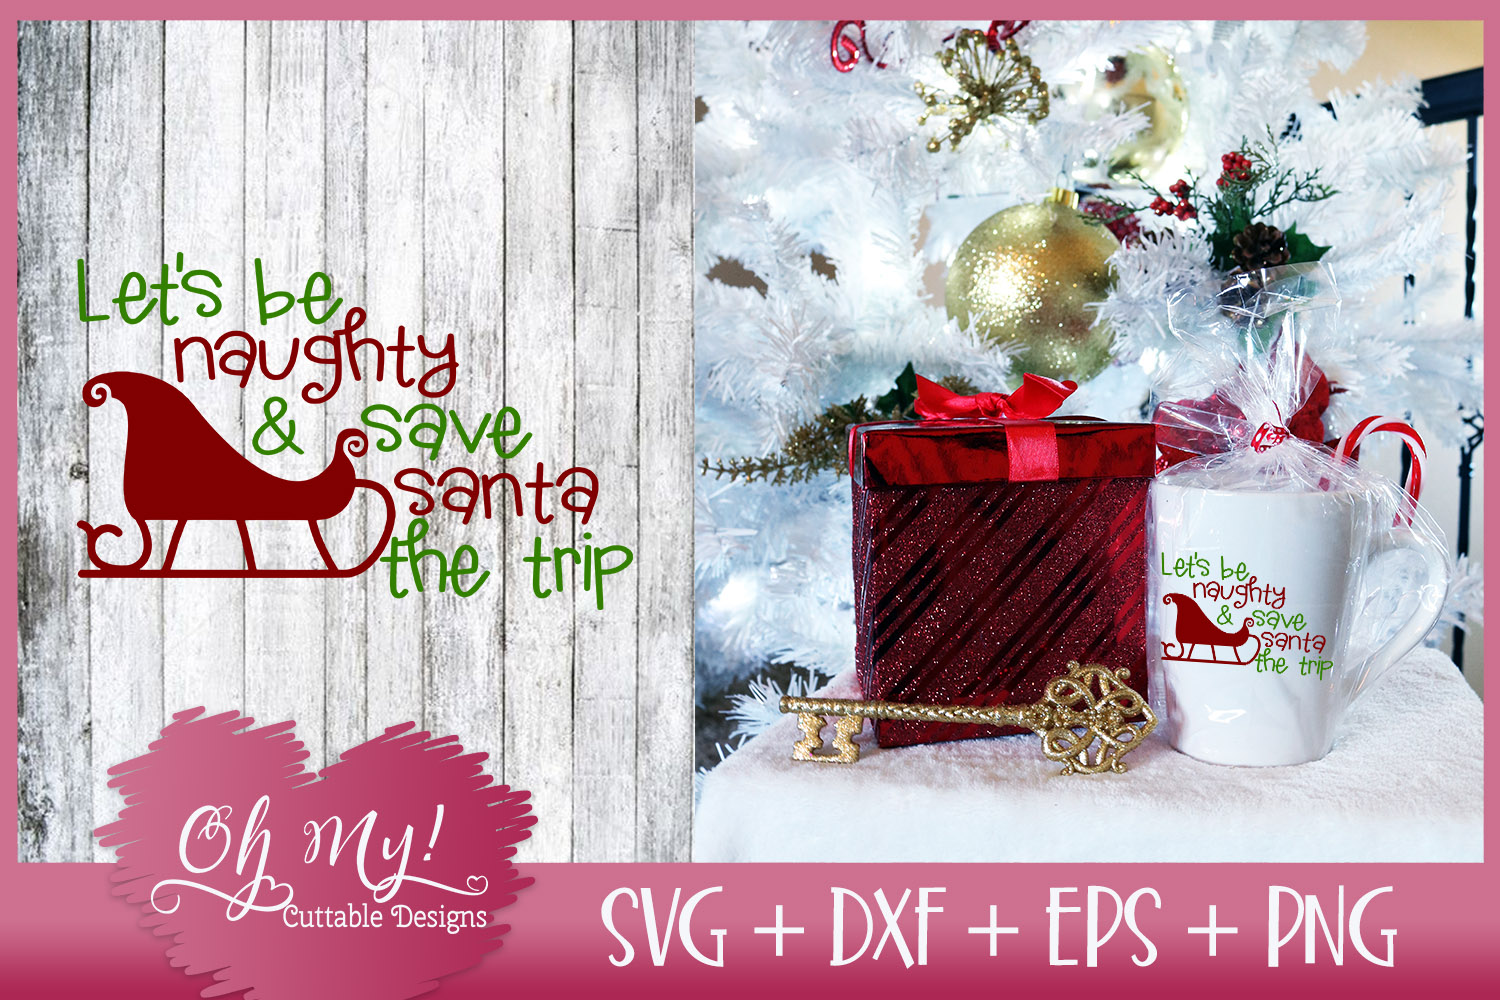 Let's Be Naughty and Save Santa The Trip - SVG EPS DXF PNG example image 1